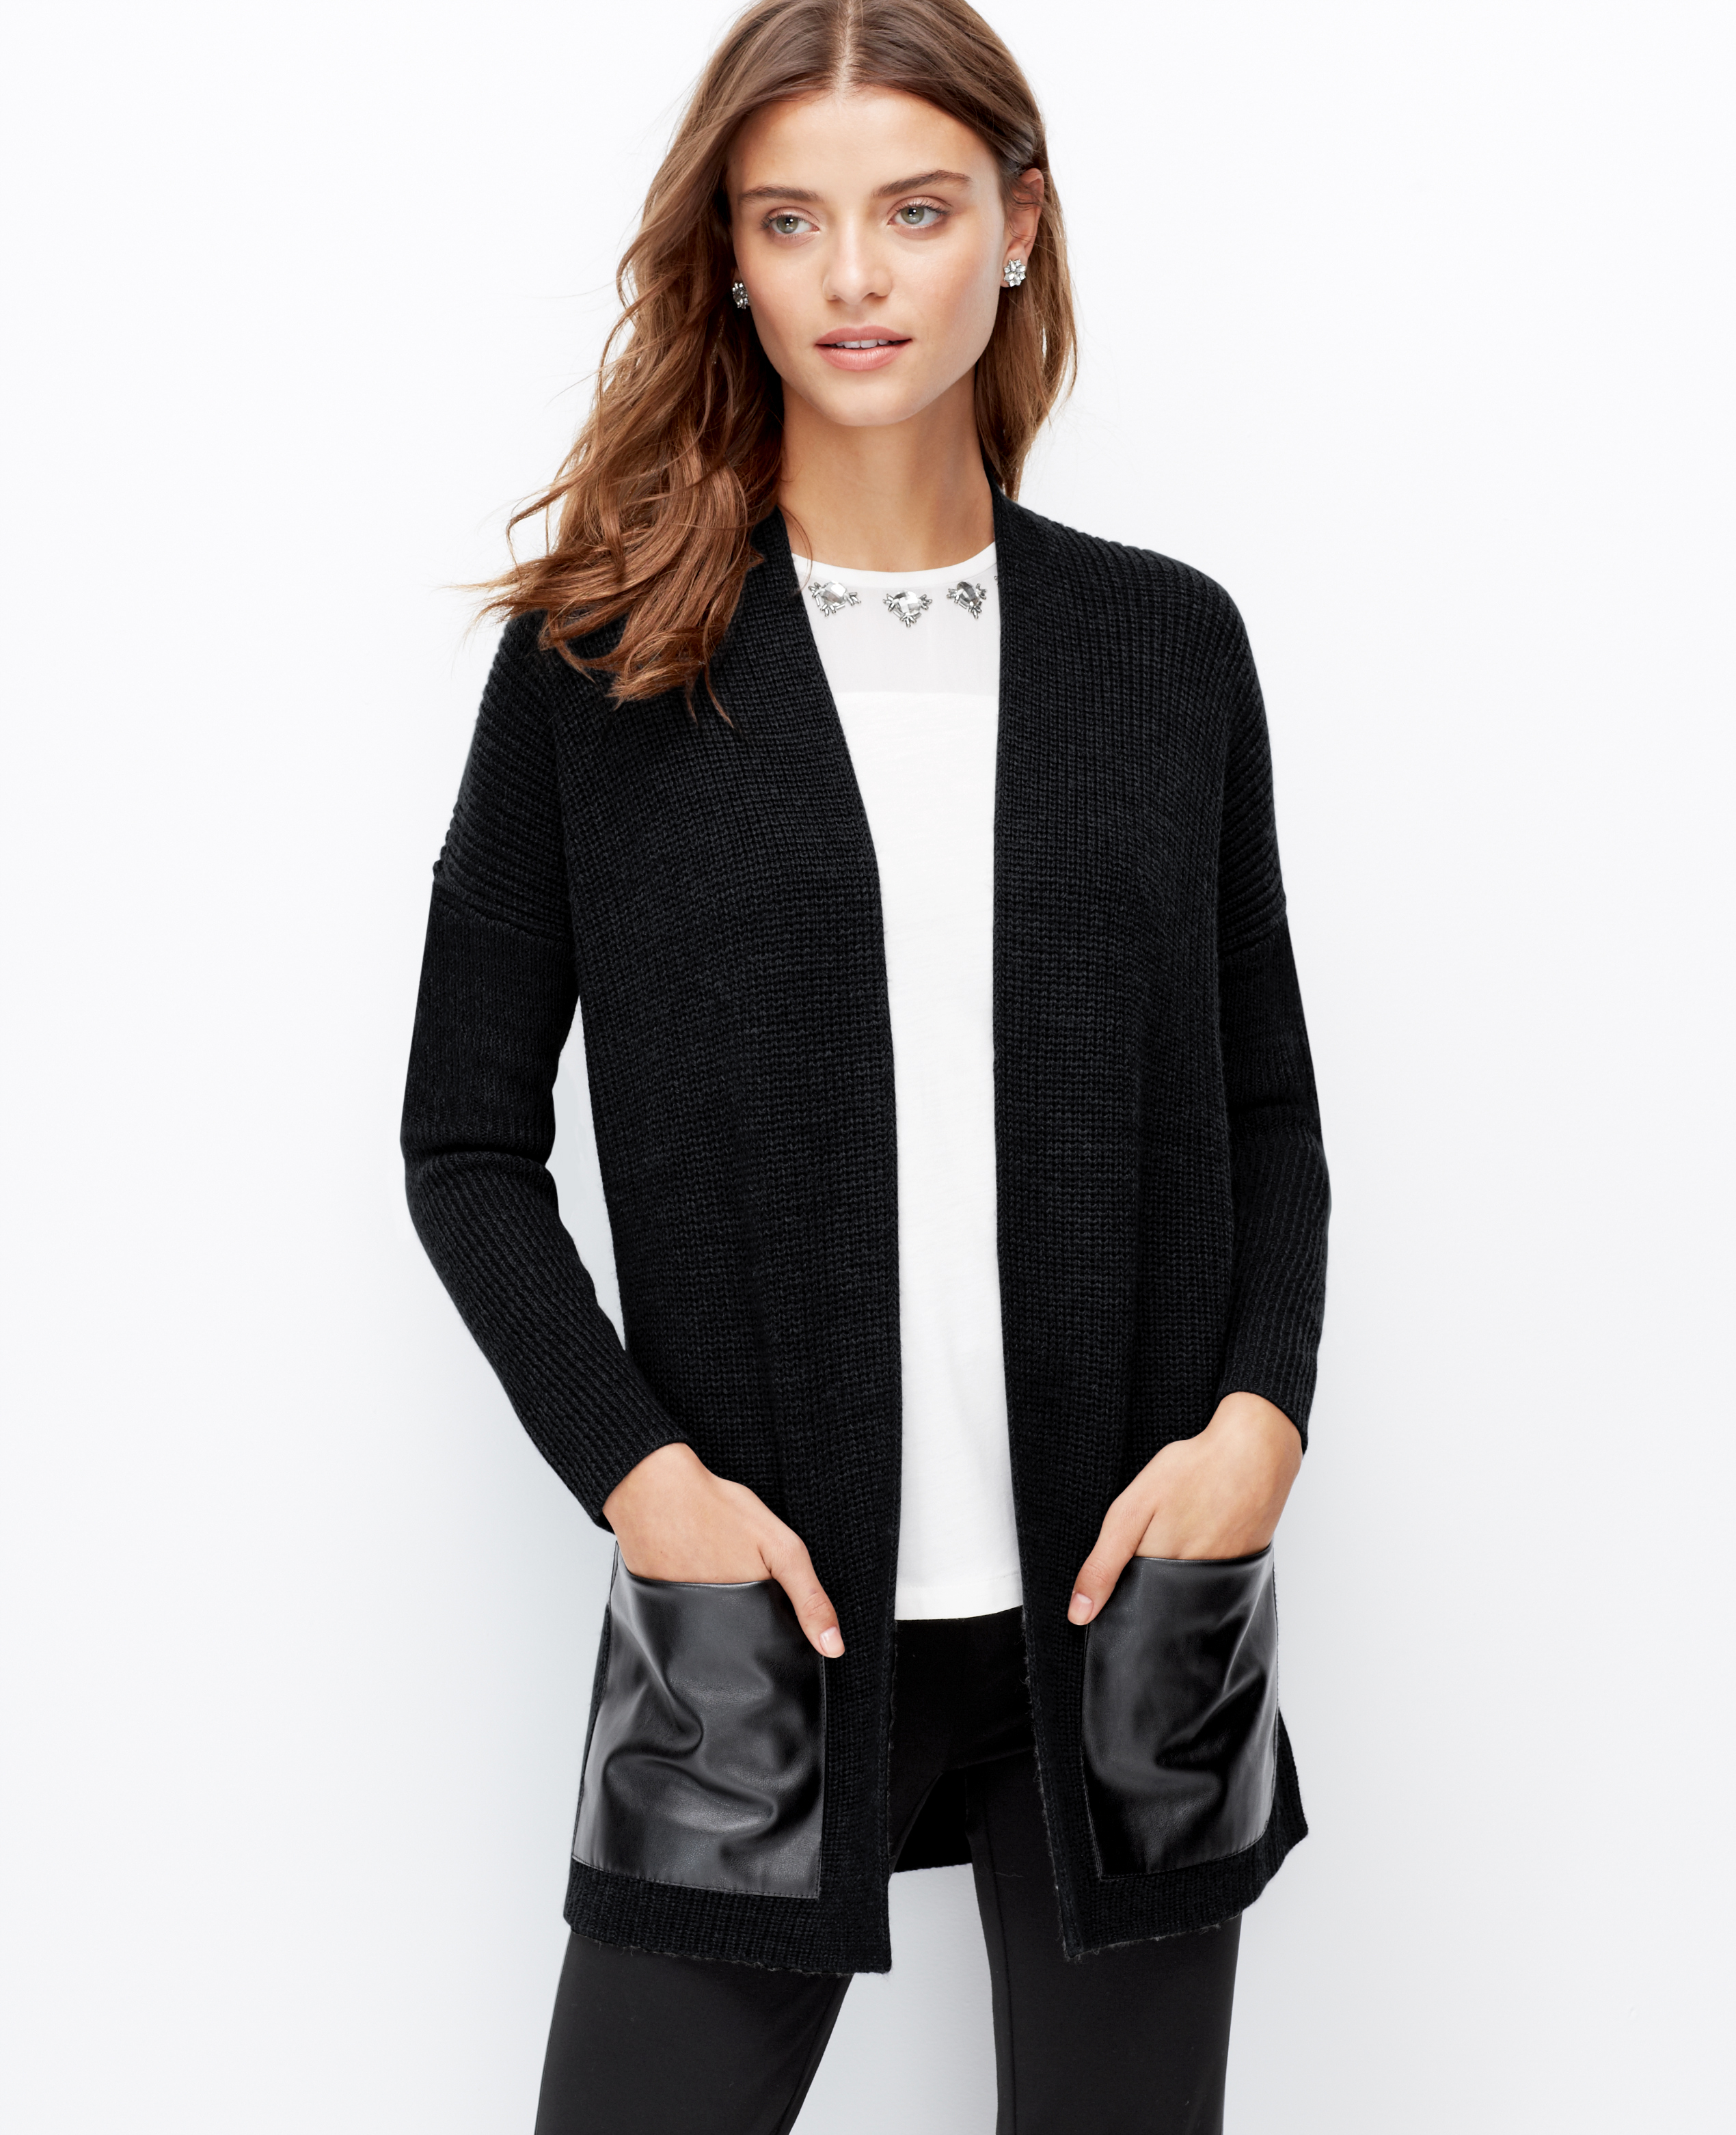 Shop fashion black shawl collar cardigan sale online at Twinkledeals. Search the latest black shawl collar cardigan with affordable price and free shipping available worldwide.